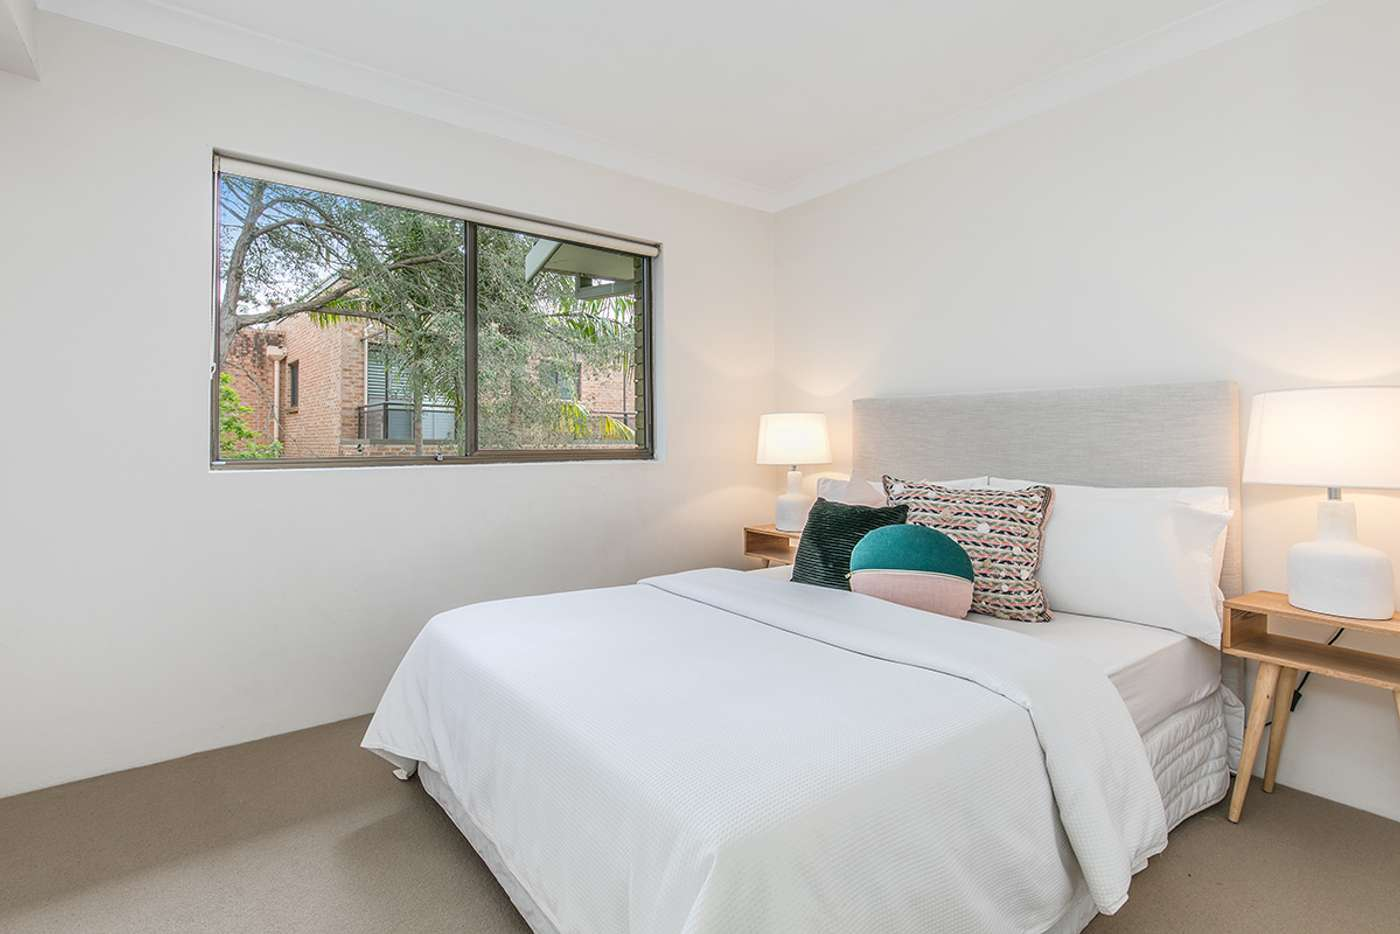 Sixth view of Homely apartment listing, 11/136-138 Spencer Road, Cremorne NSW 2090